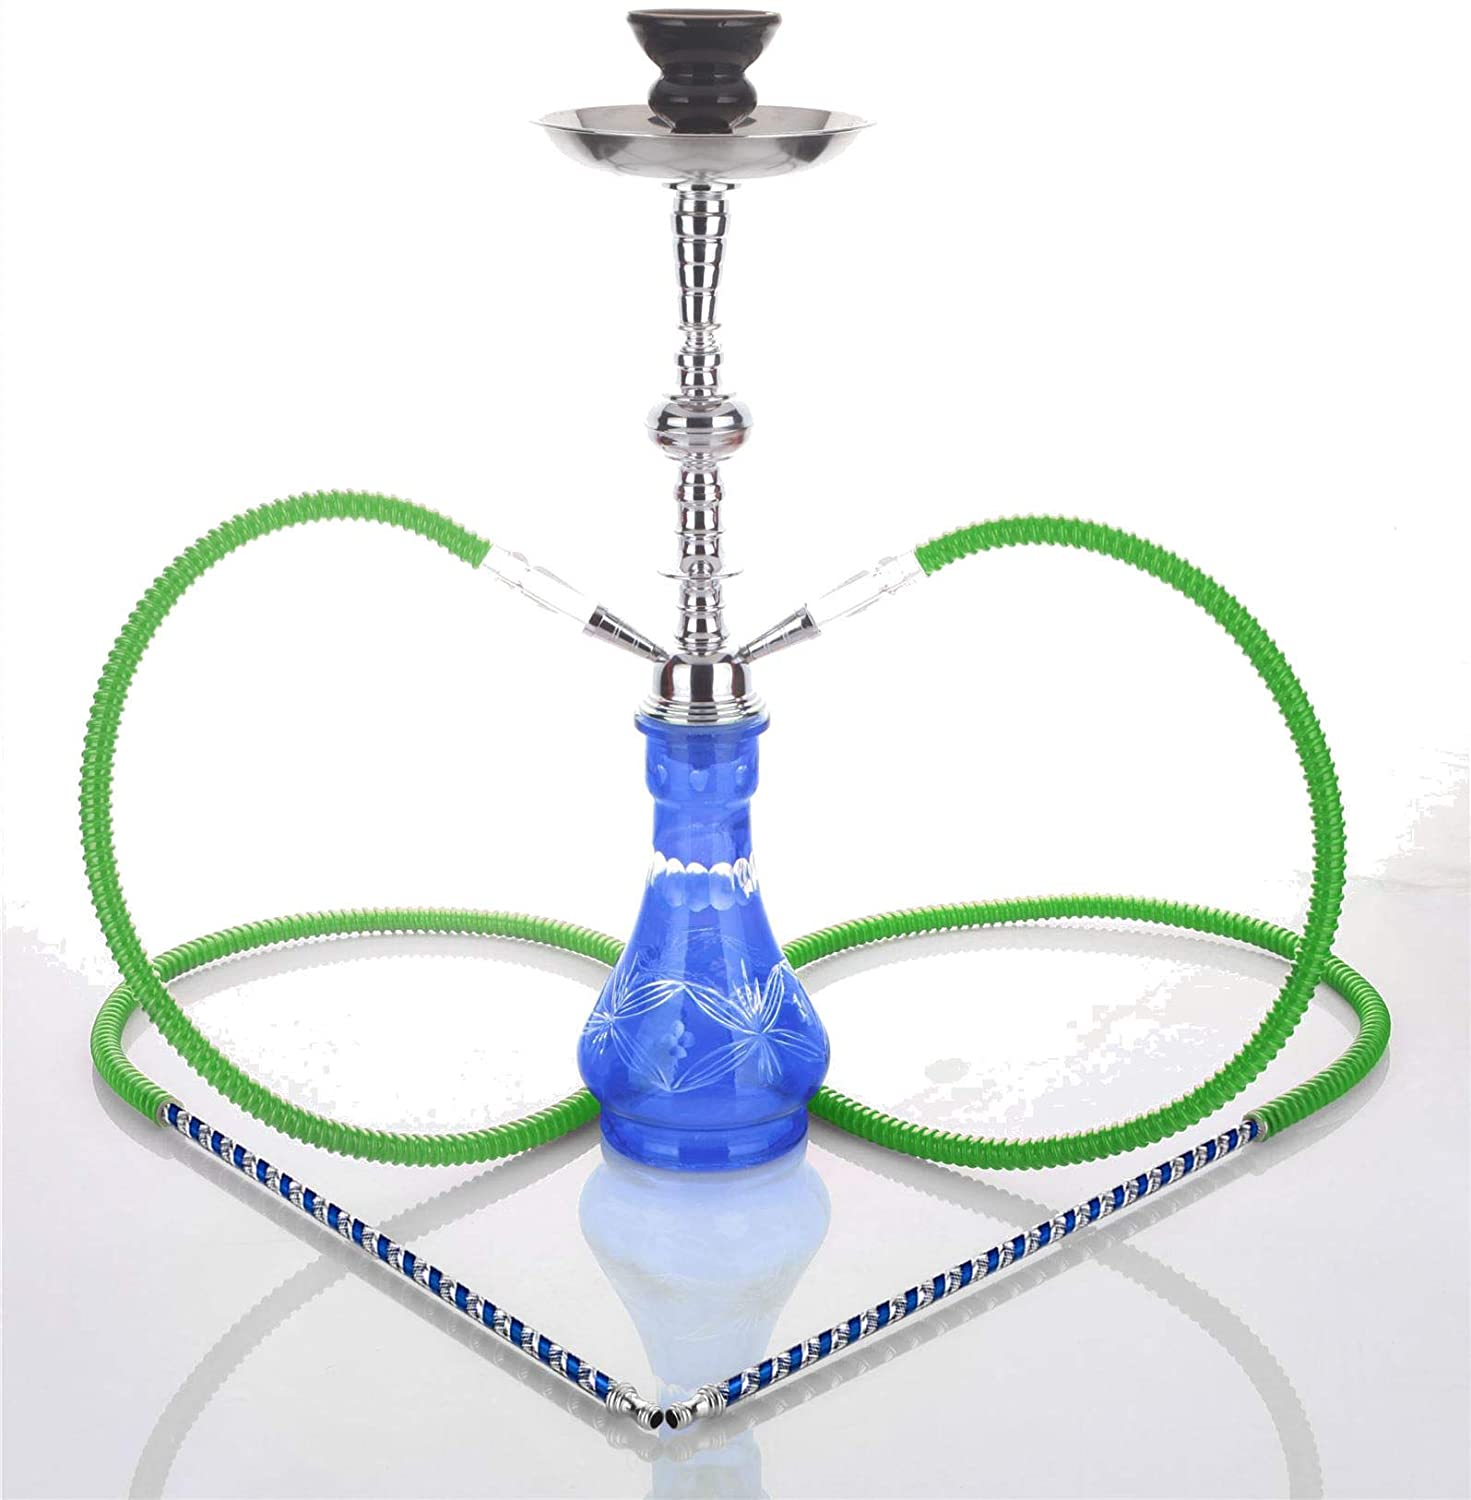 Medium Blue 2 Hose hooka - no Tobacco no Nicotine